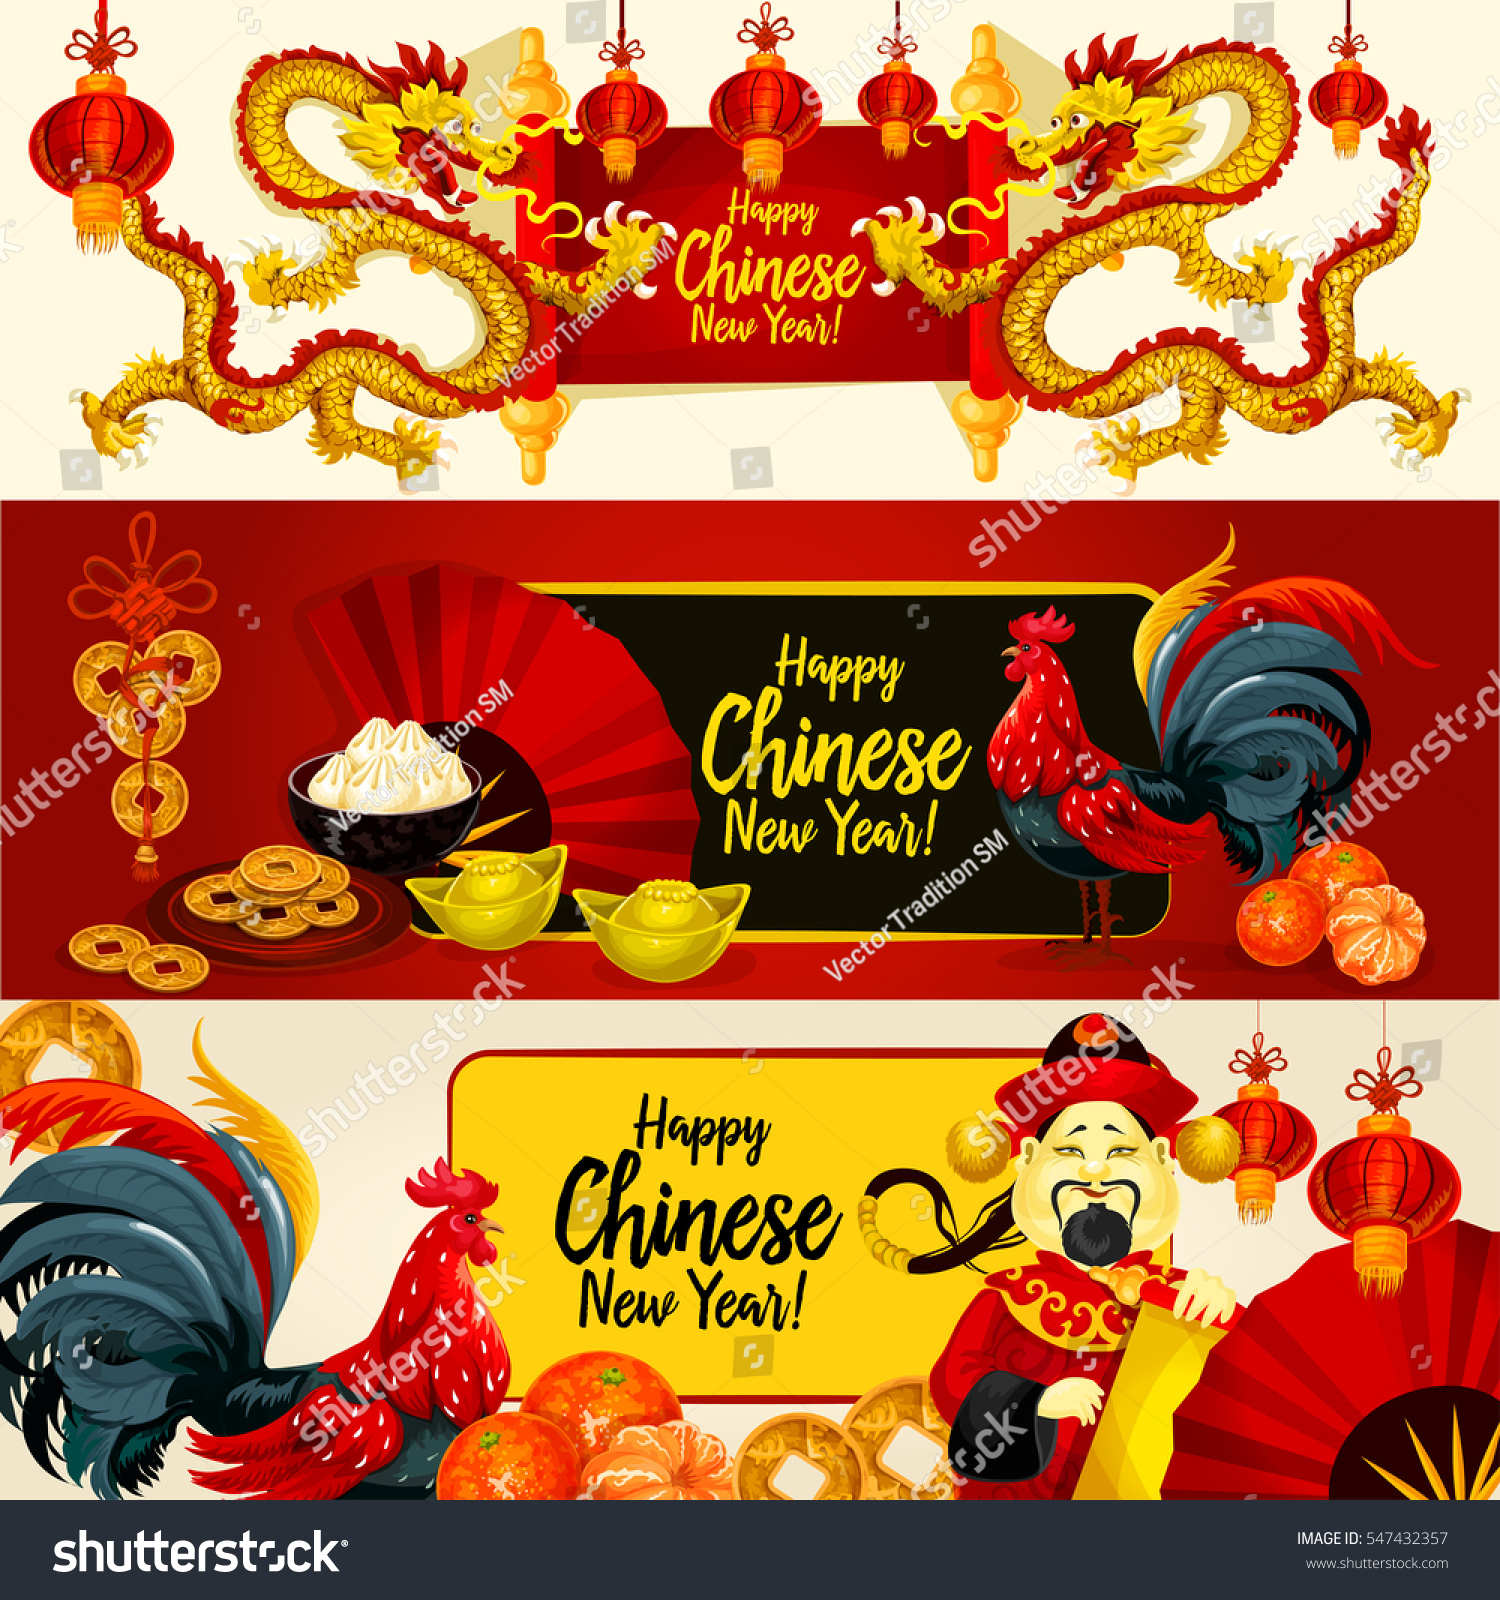 Chinese new year greeting banner set red rooster paper lantern id 547432357 m4hsunfo